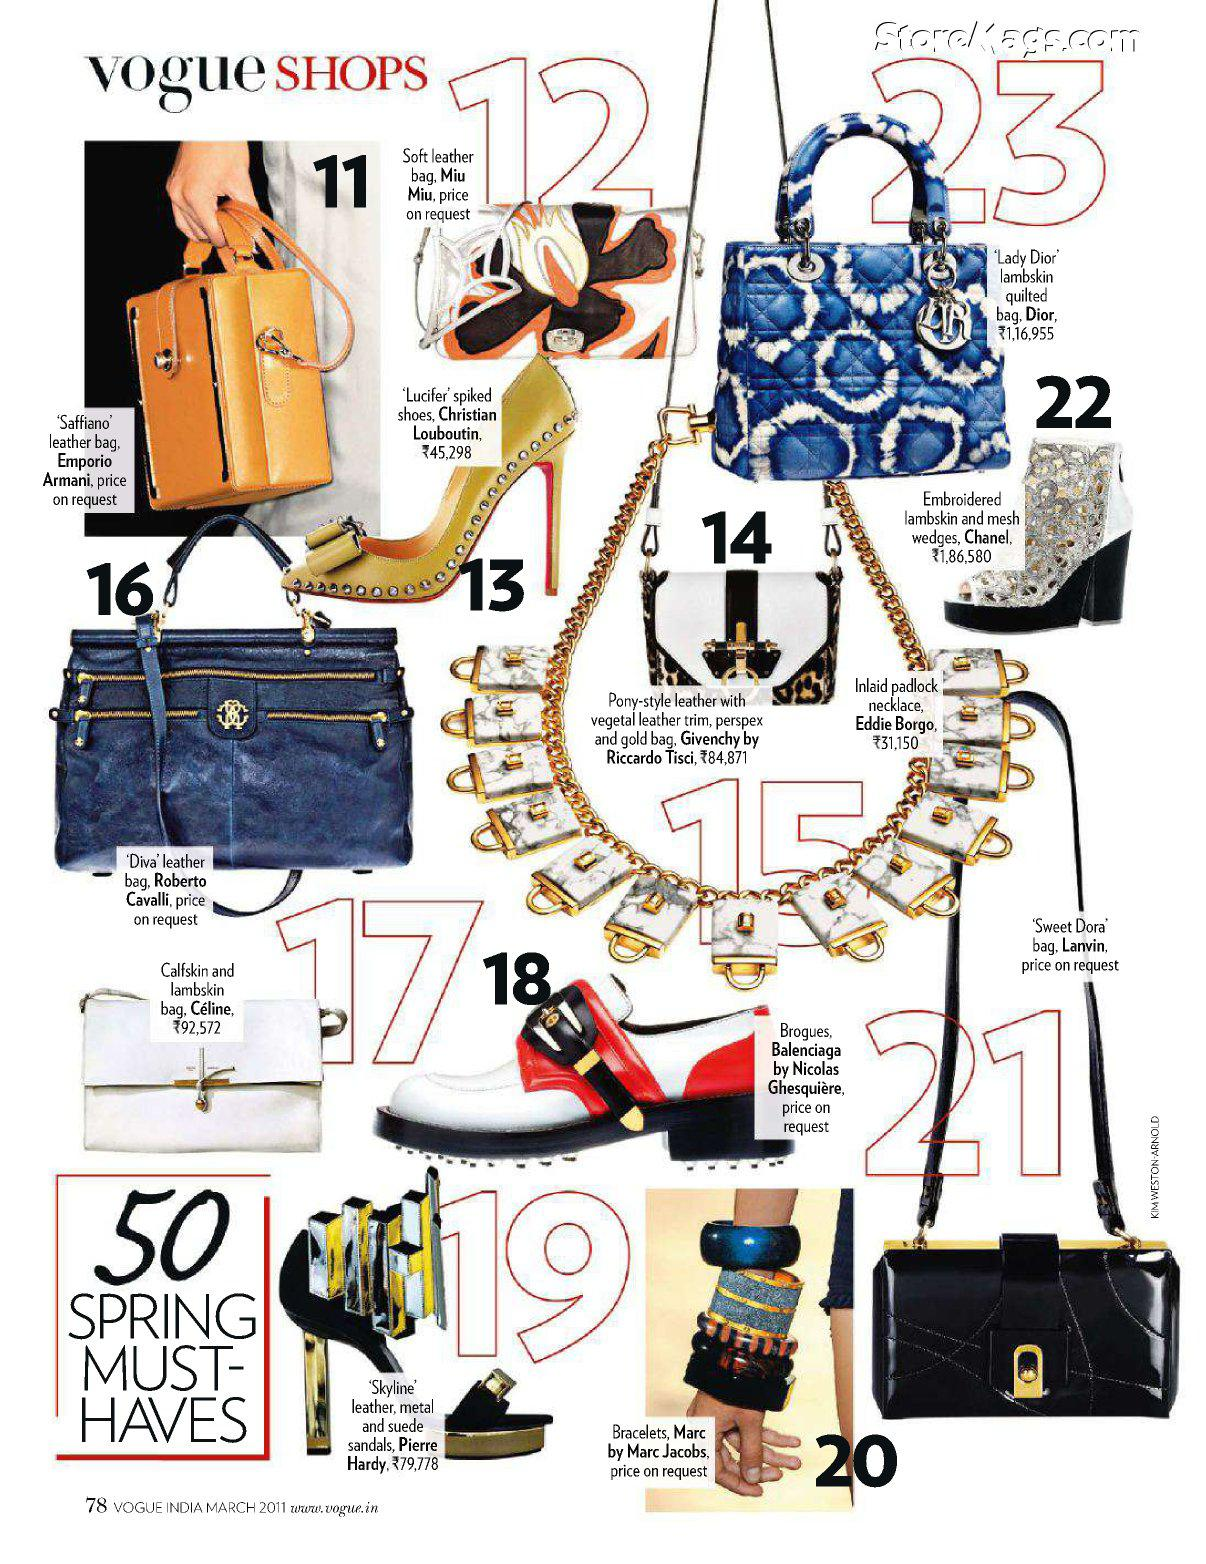 Indian Fashion Trends: Vogue Spring Fashion: 8 Must Have